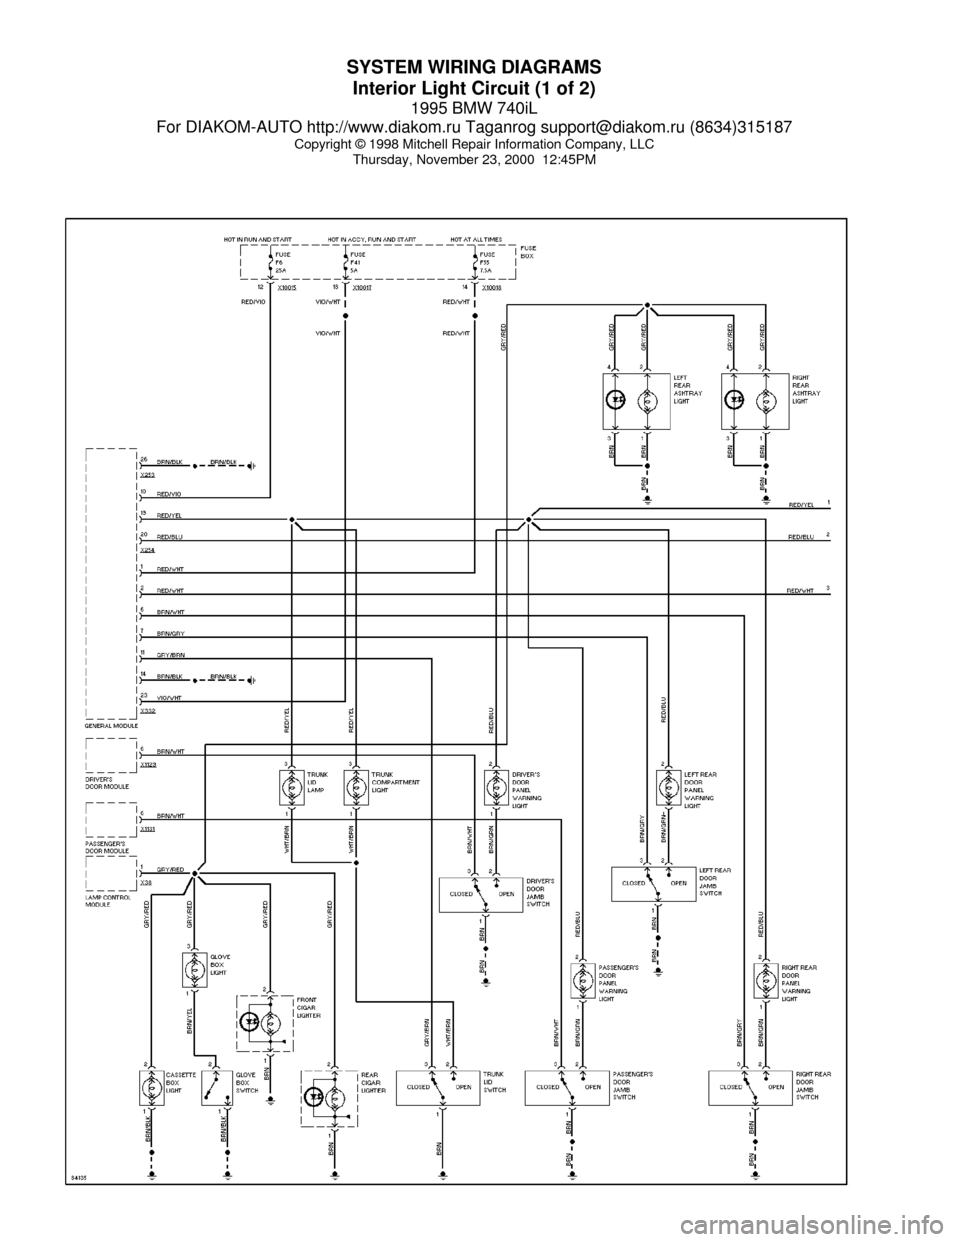 medium resolution of bmw 740il 1995 e38 system wiring diagrams 2000 bmw z3 radio wiring diagram 2000 bmw 540i